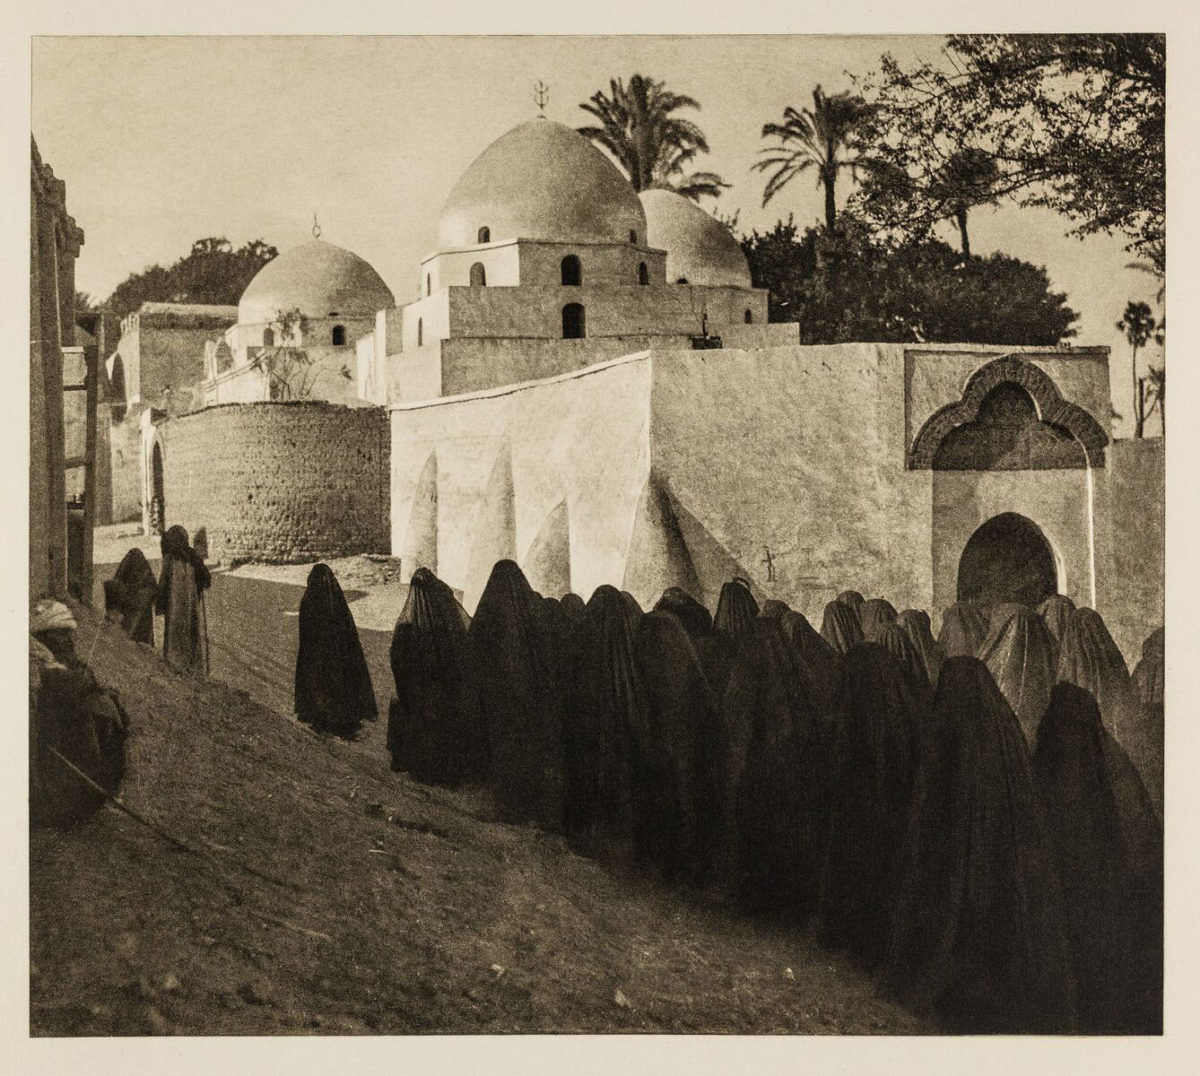 Towards the cemetery of the town Asyut, Egypt 1929. From the book Égypte, published by Paul Trembley in Geneva (1932).